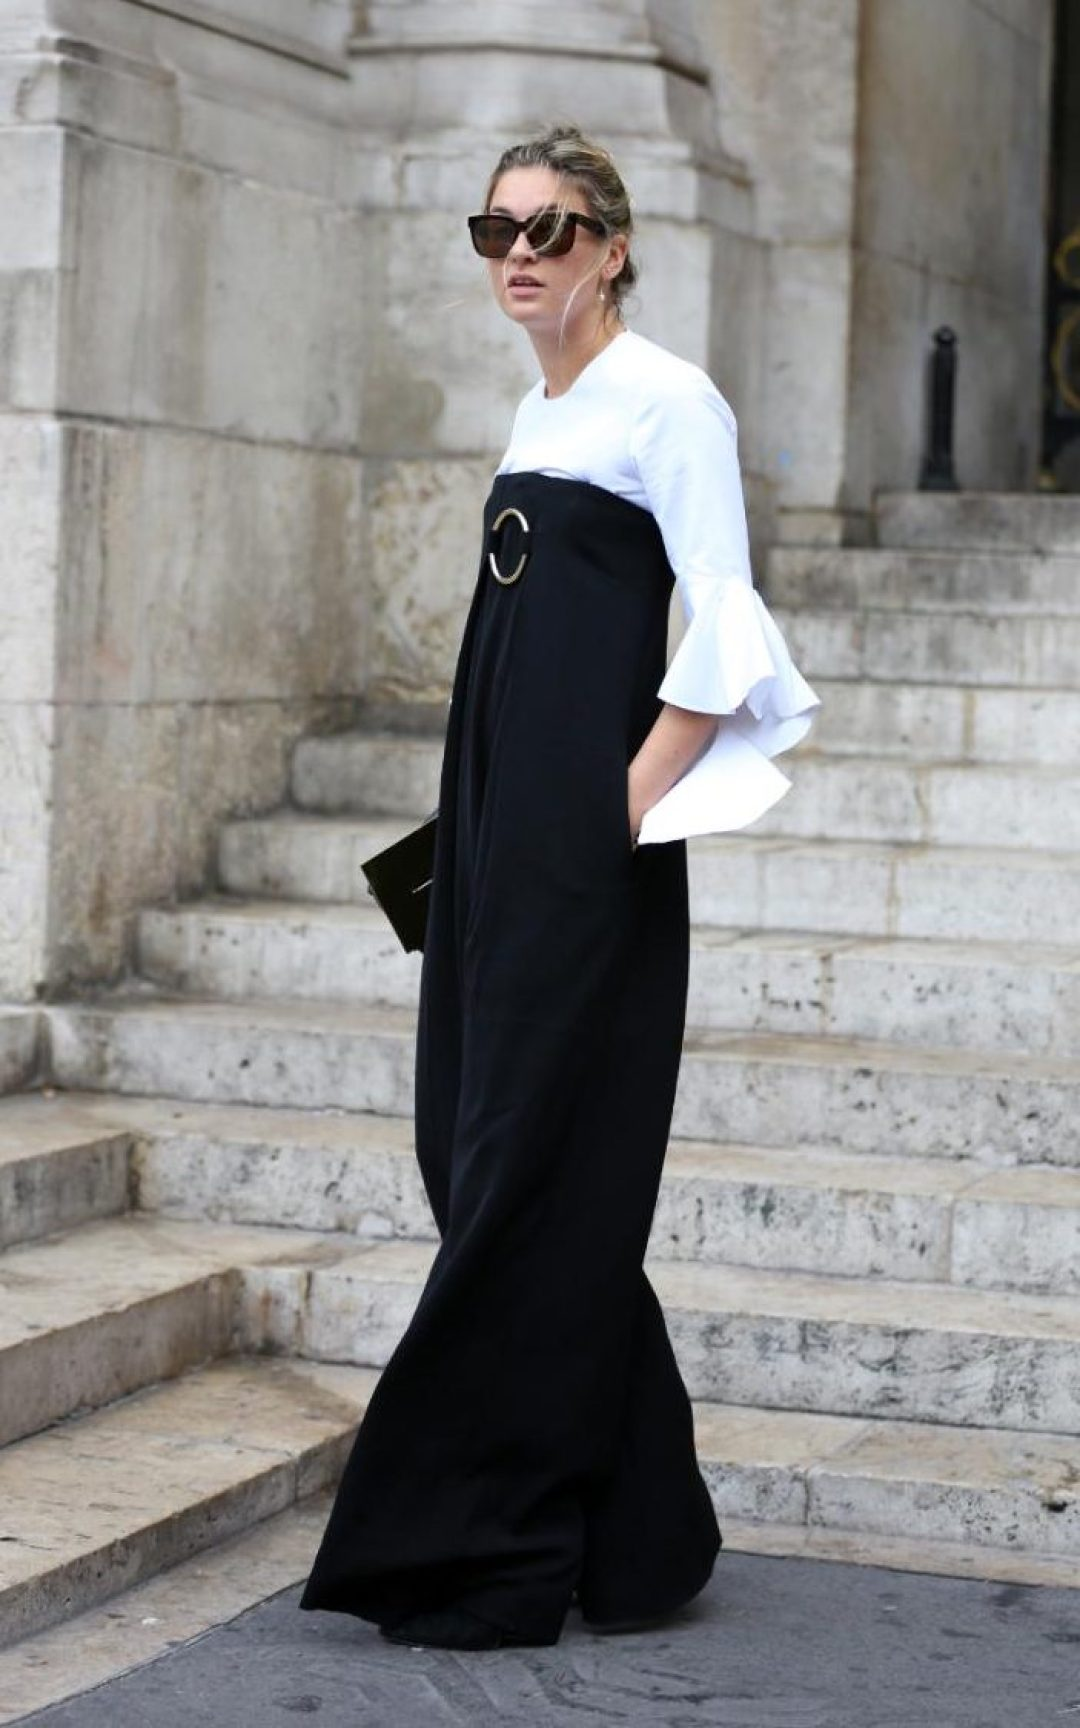 Camille Charriere wear dresses in winter layered - telegraph.co